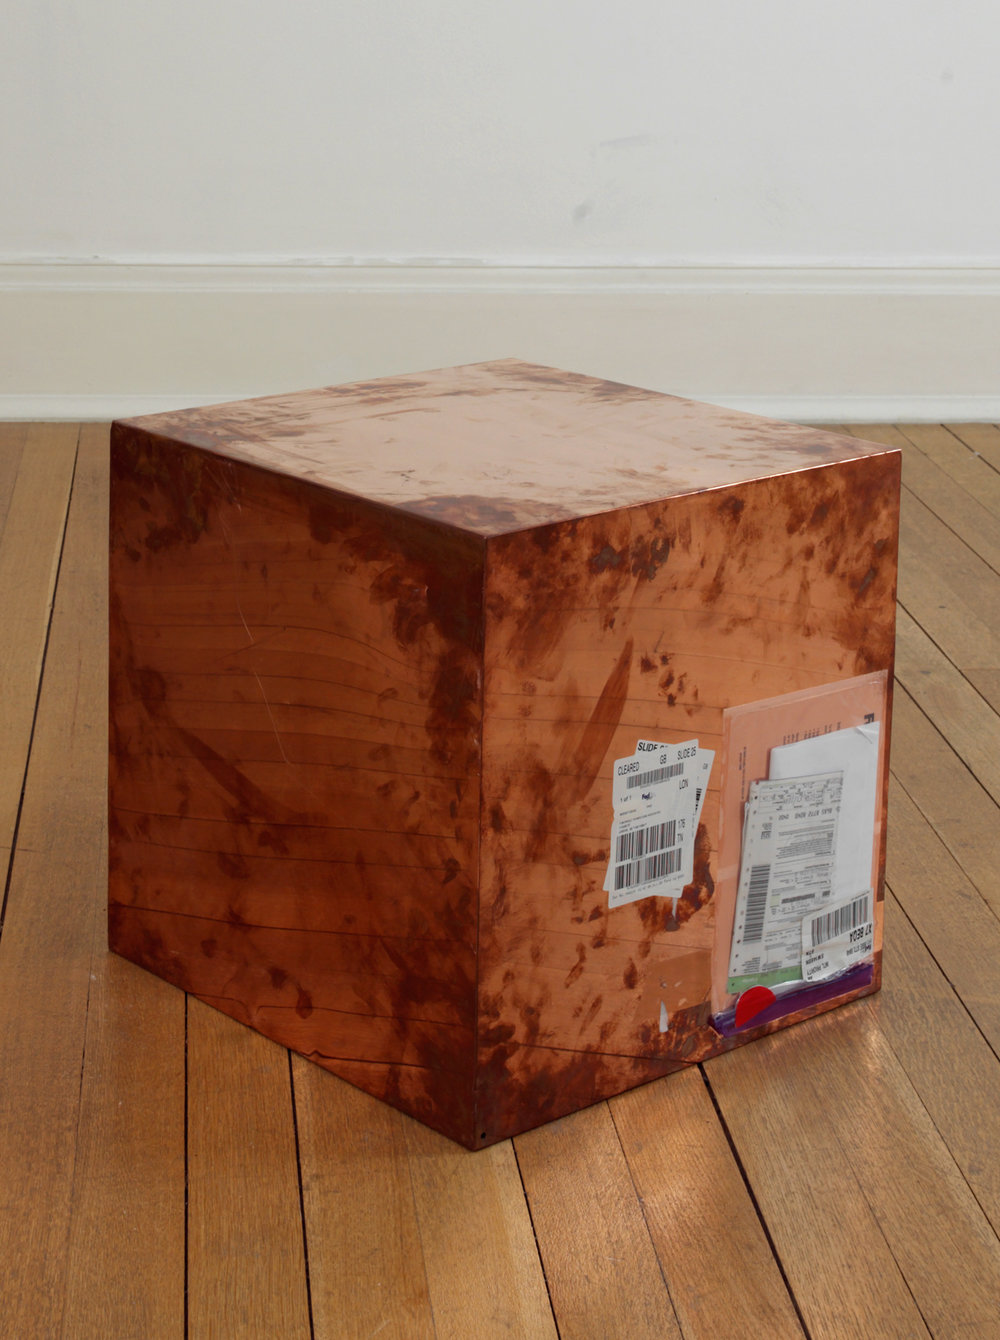 FedEx® Large Kraft Box  © 2005 FEDEX 330508 REV 10/05 SSCC, International Priority, Los Angeles–London trk#868587728040, October 02–05, 2009, International Priority, London–New York trk#863822956489, November 18–20, 2009, International Priority, New York–London trk#795200981790, September 19–21, 2011    2009–   Polished copper, accrued FedEx shipping and tracking labels  20 x 20 x 20 inches   Production Stills, 2009